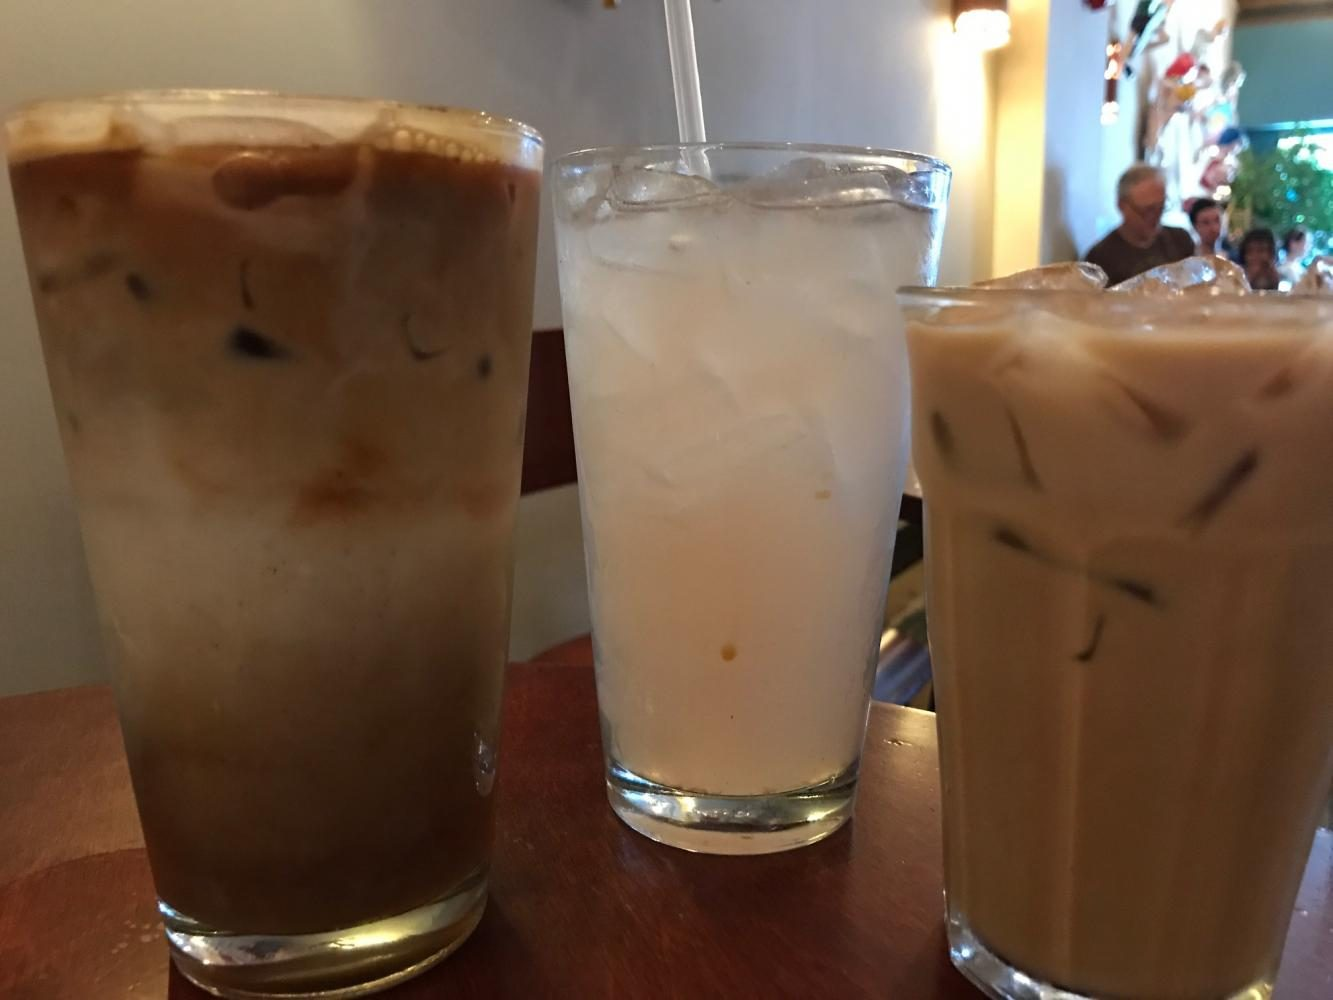 From left to right: Zippy Chai Tea, Rose Lemonade, and Sweet Cream Coffee. Zanzibar's Coffee Adventure is open from 6:30 a.m to 7:00 p.m.